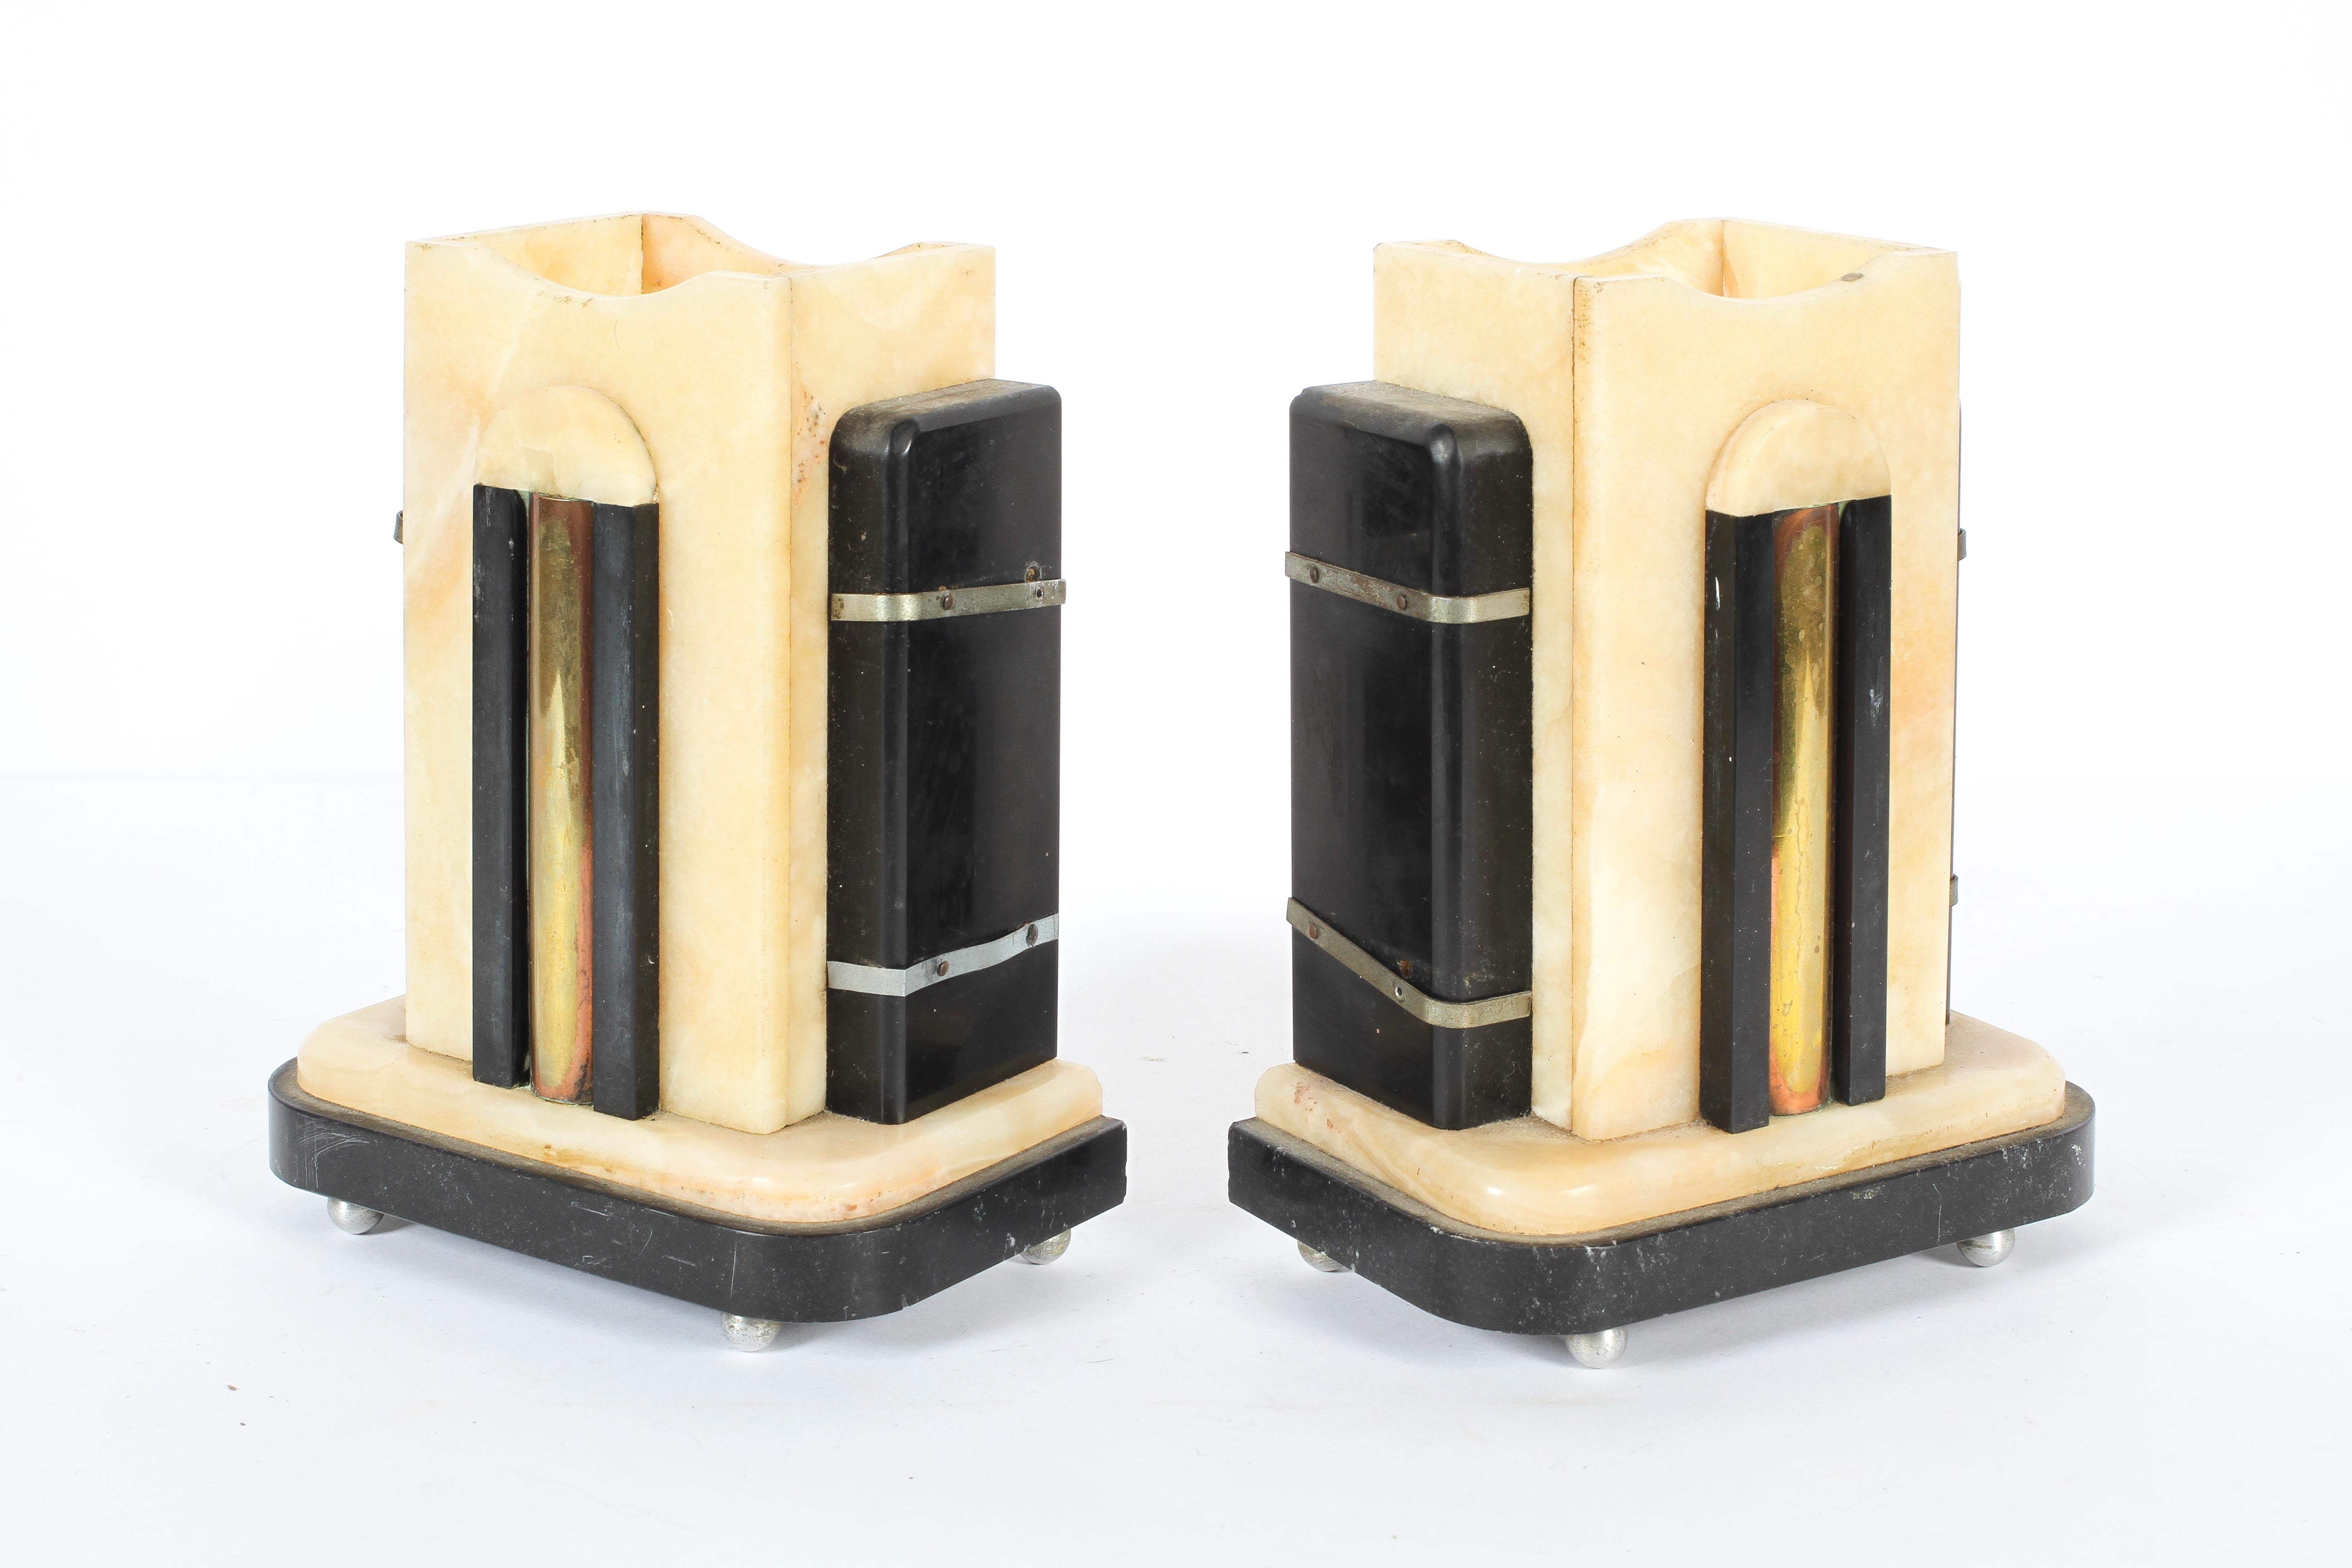 An art deco style clock garniture in alabaster and black slate or marble, - Image 2 of 3